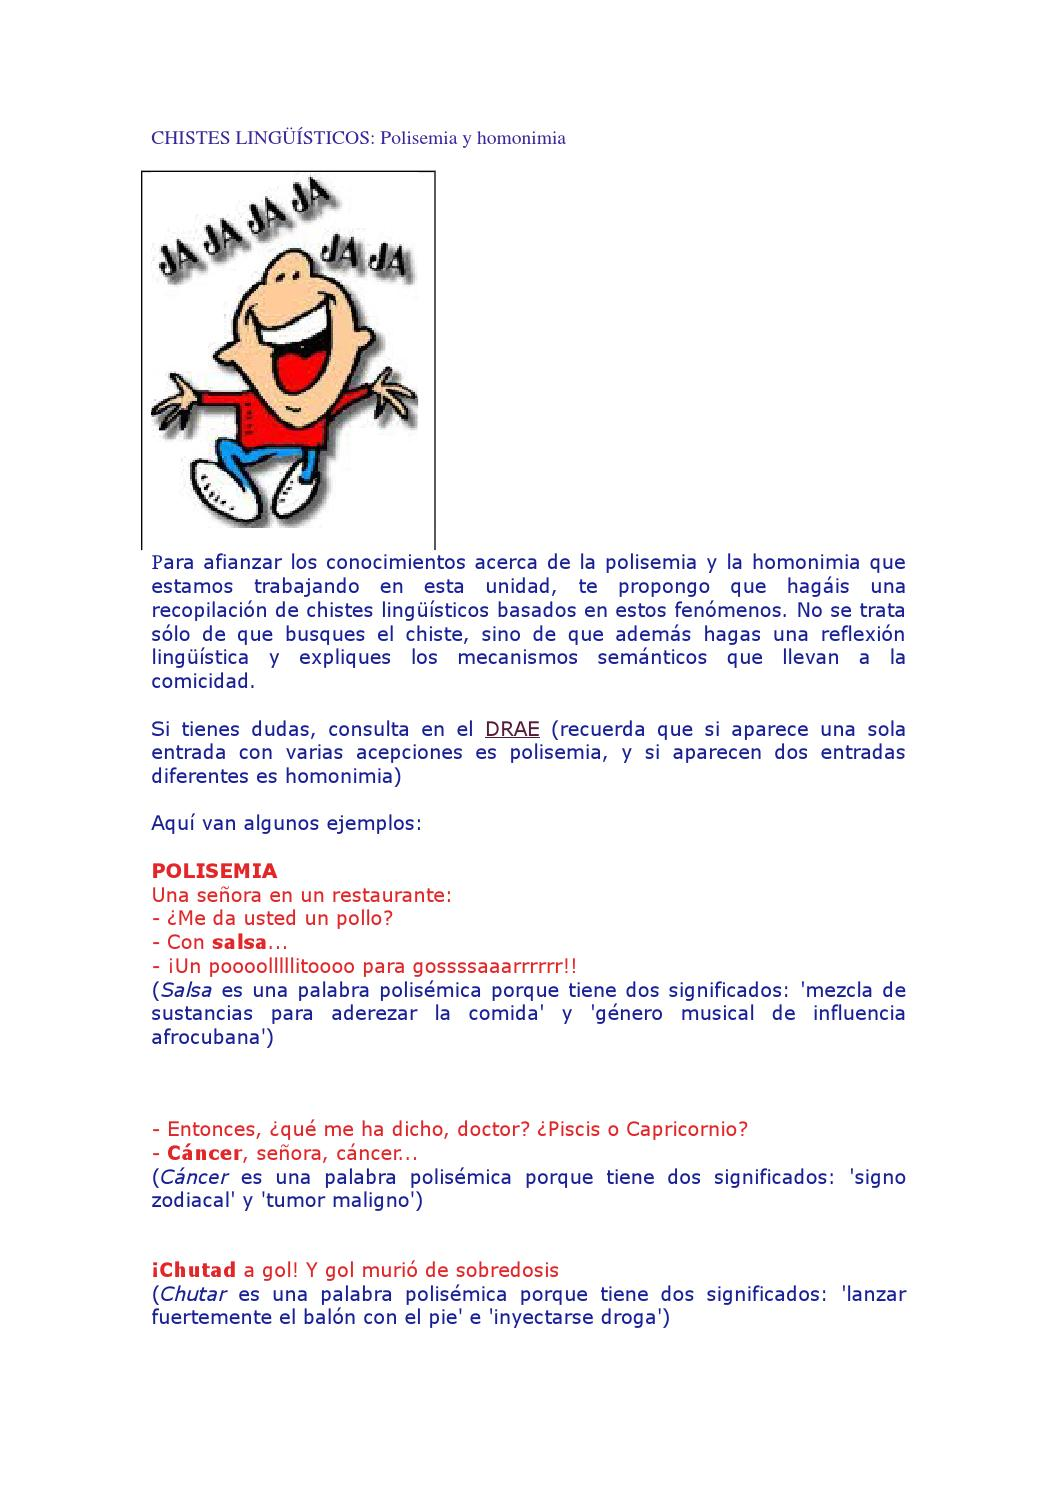 chistes ling252237sticos by ana molin233 issuu